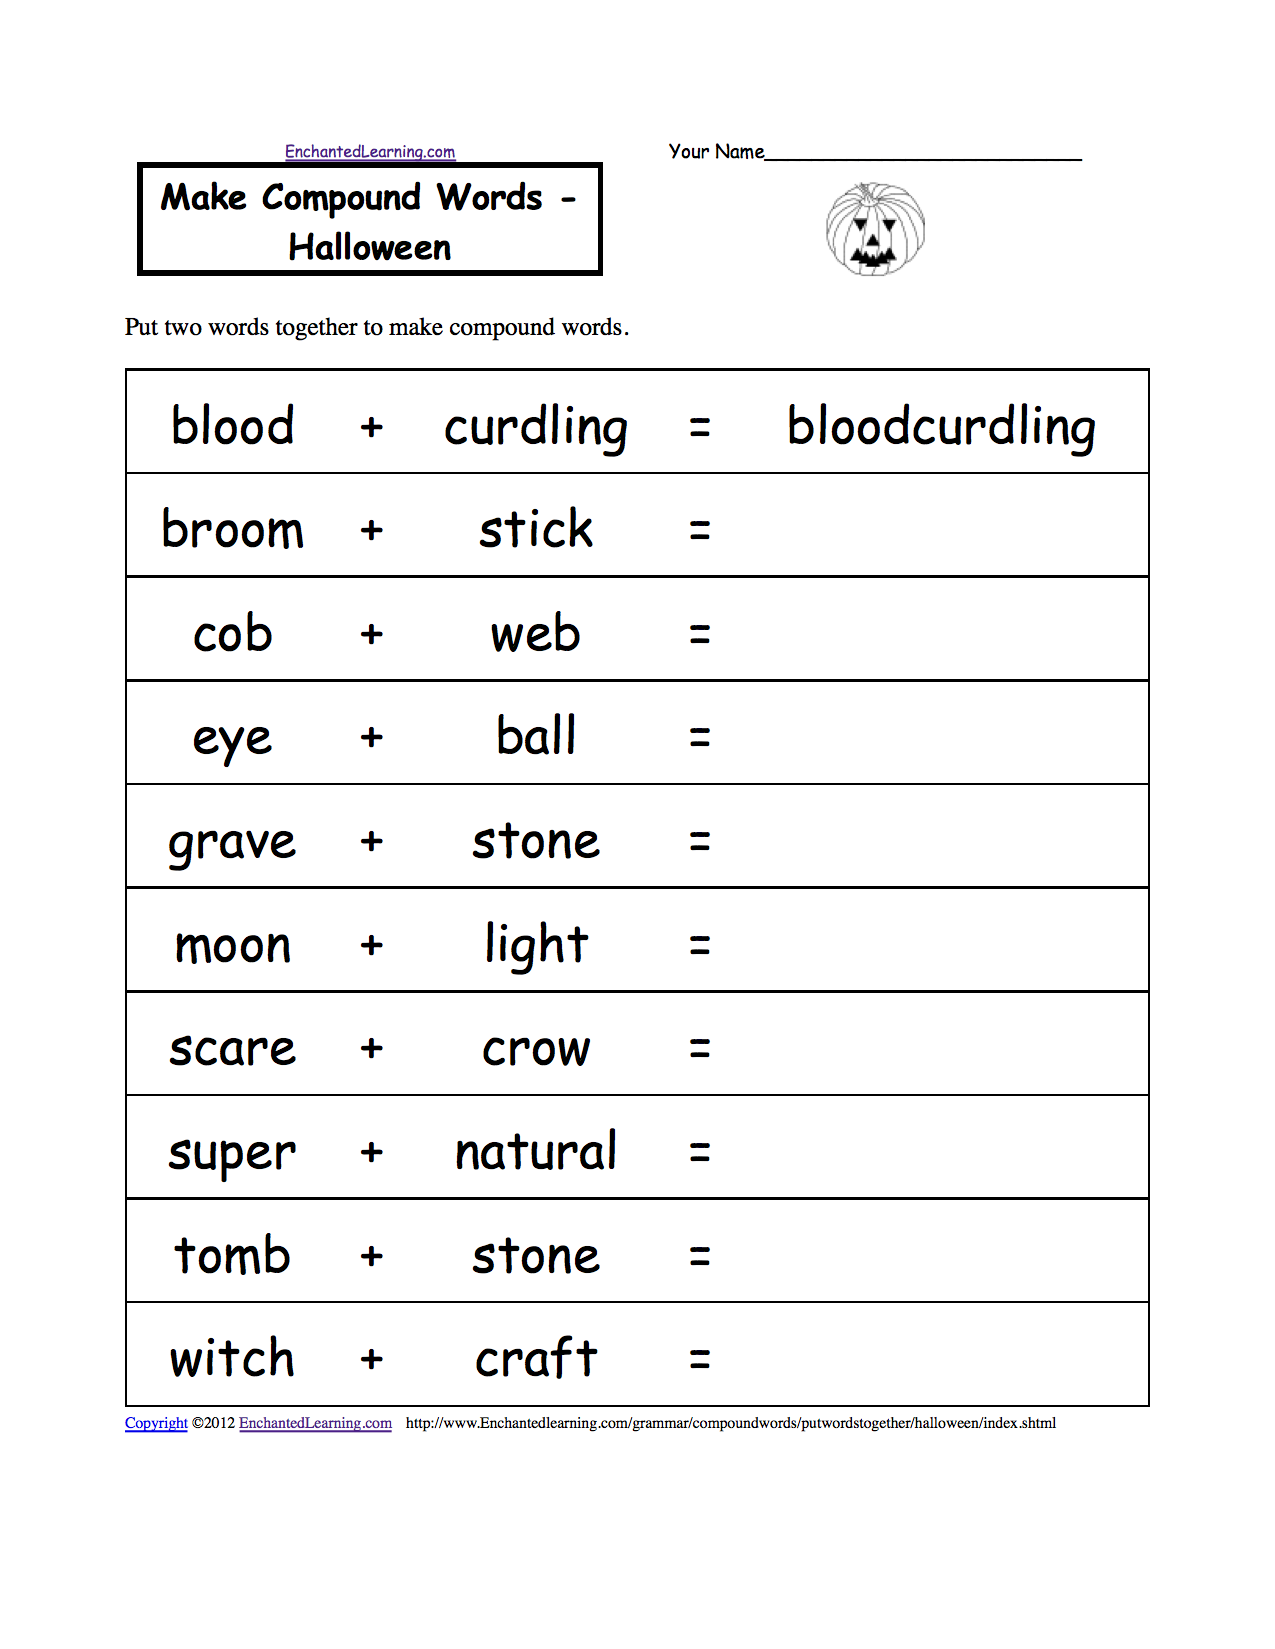 Make Compound Words - Halloween, A Printable Worksheet